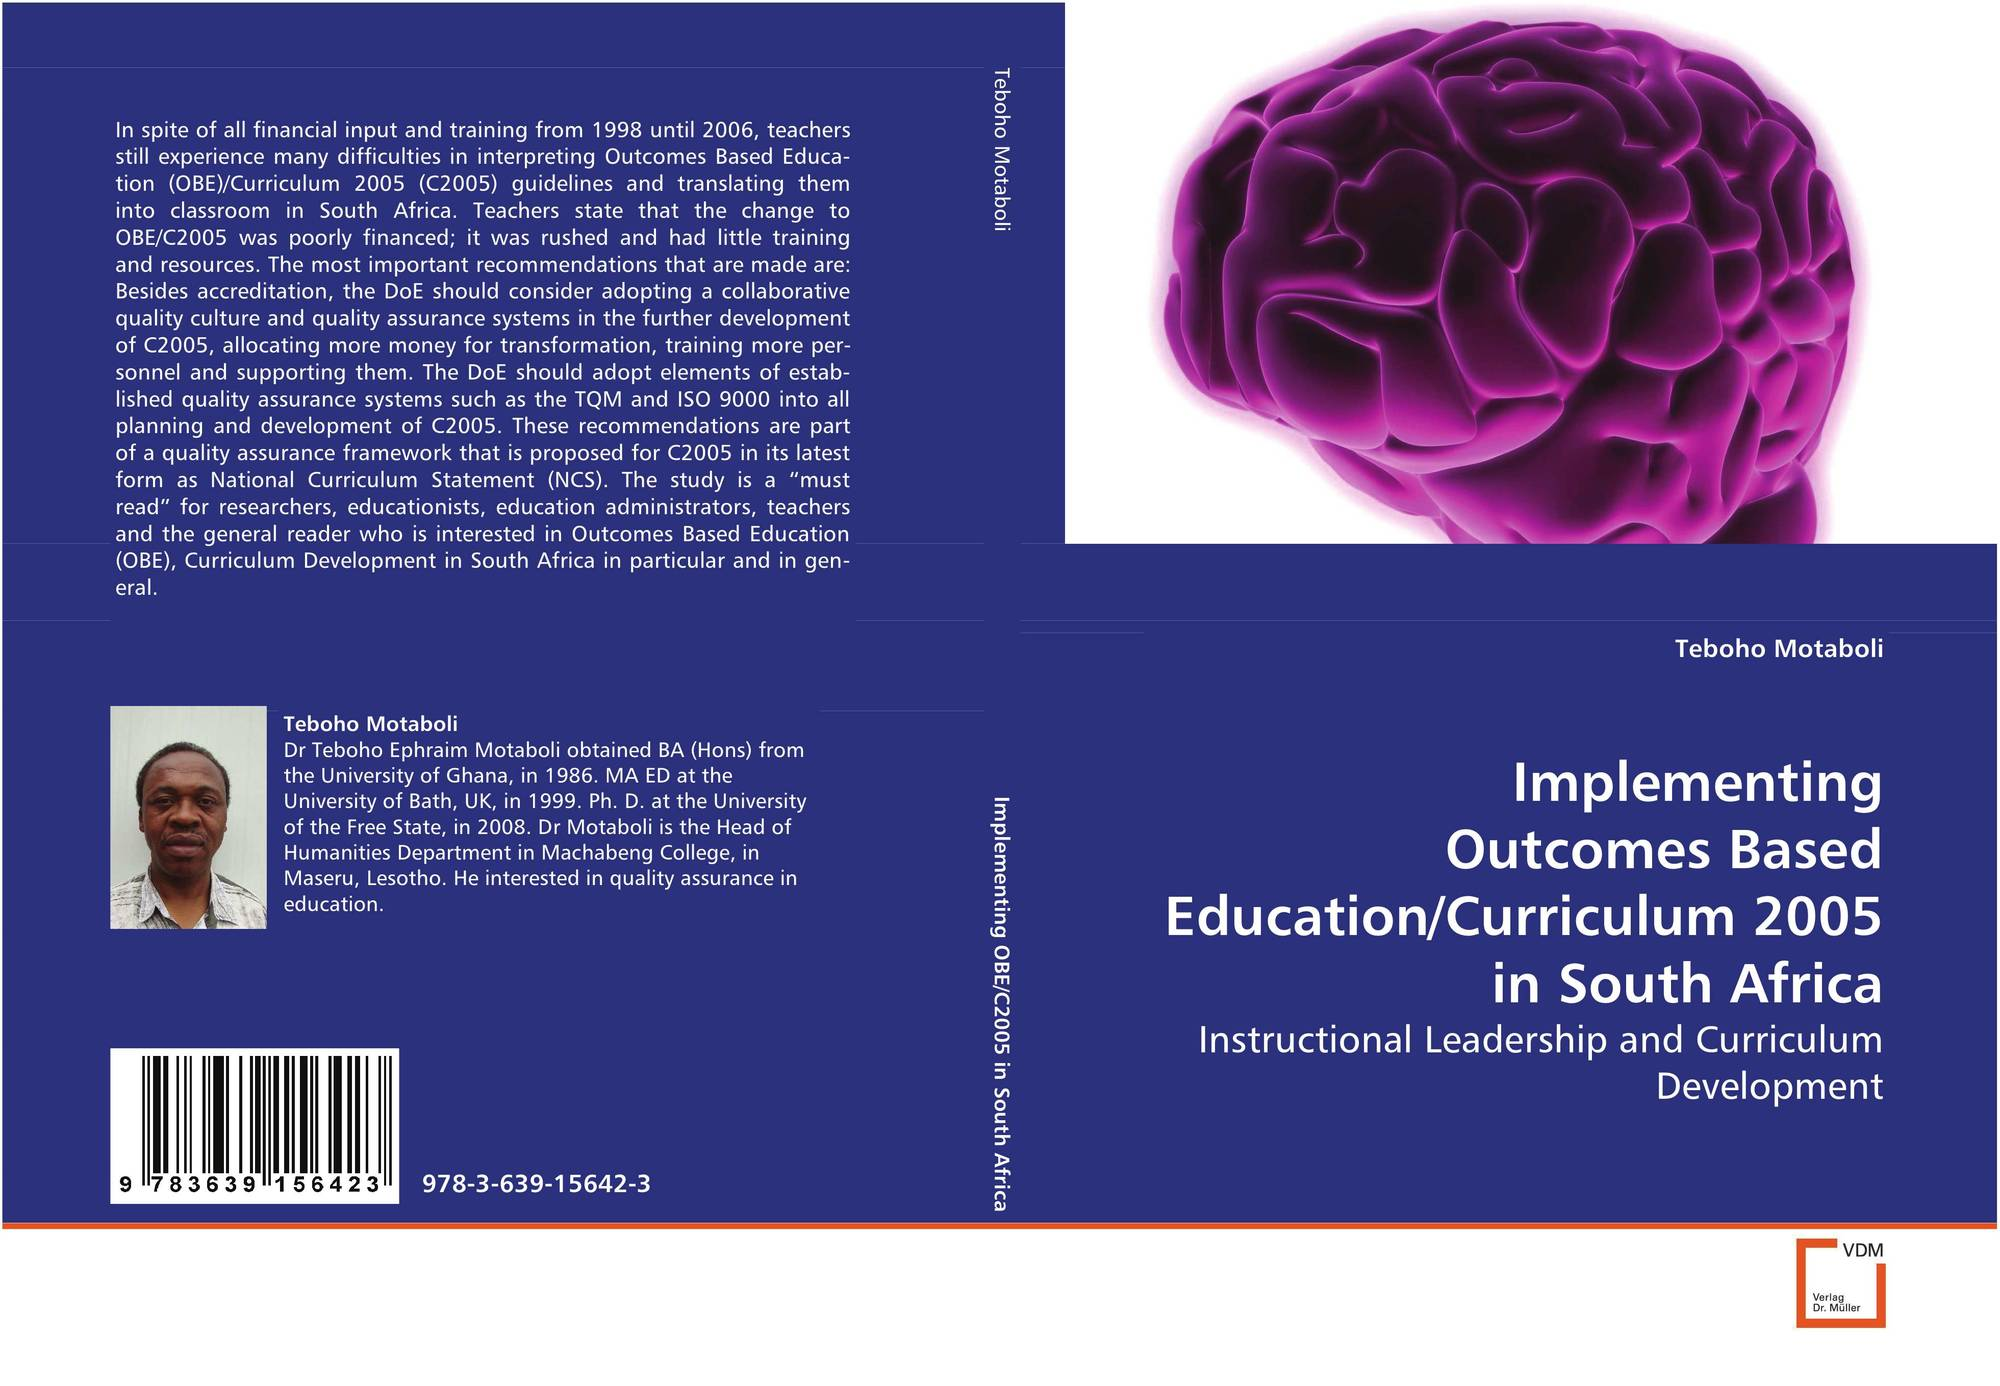 define outcomes based education and its effect on education today A world-class education system should not just be defined by rates of high school and college graduation but also by the quality of its educational outcomes and whether the content and skills are adequately preparing students for a rapidly changing global environment.